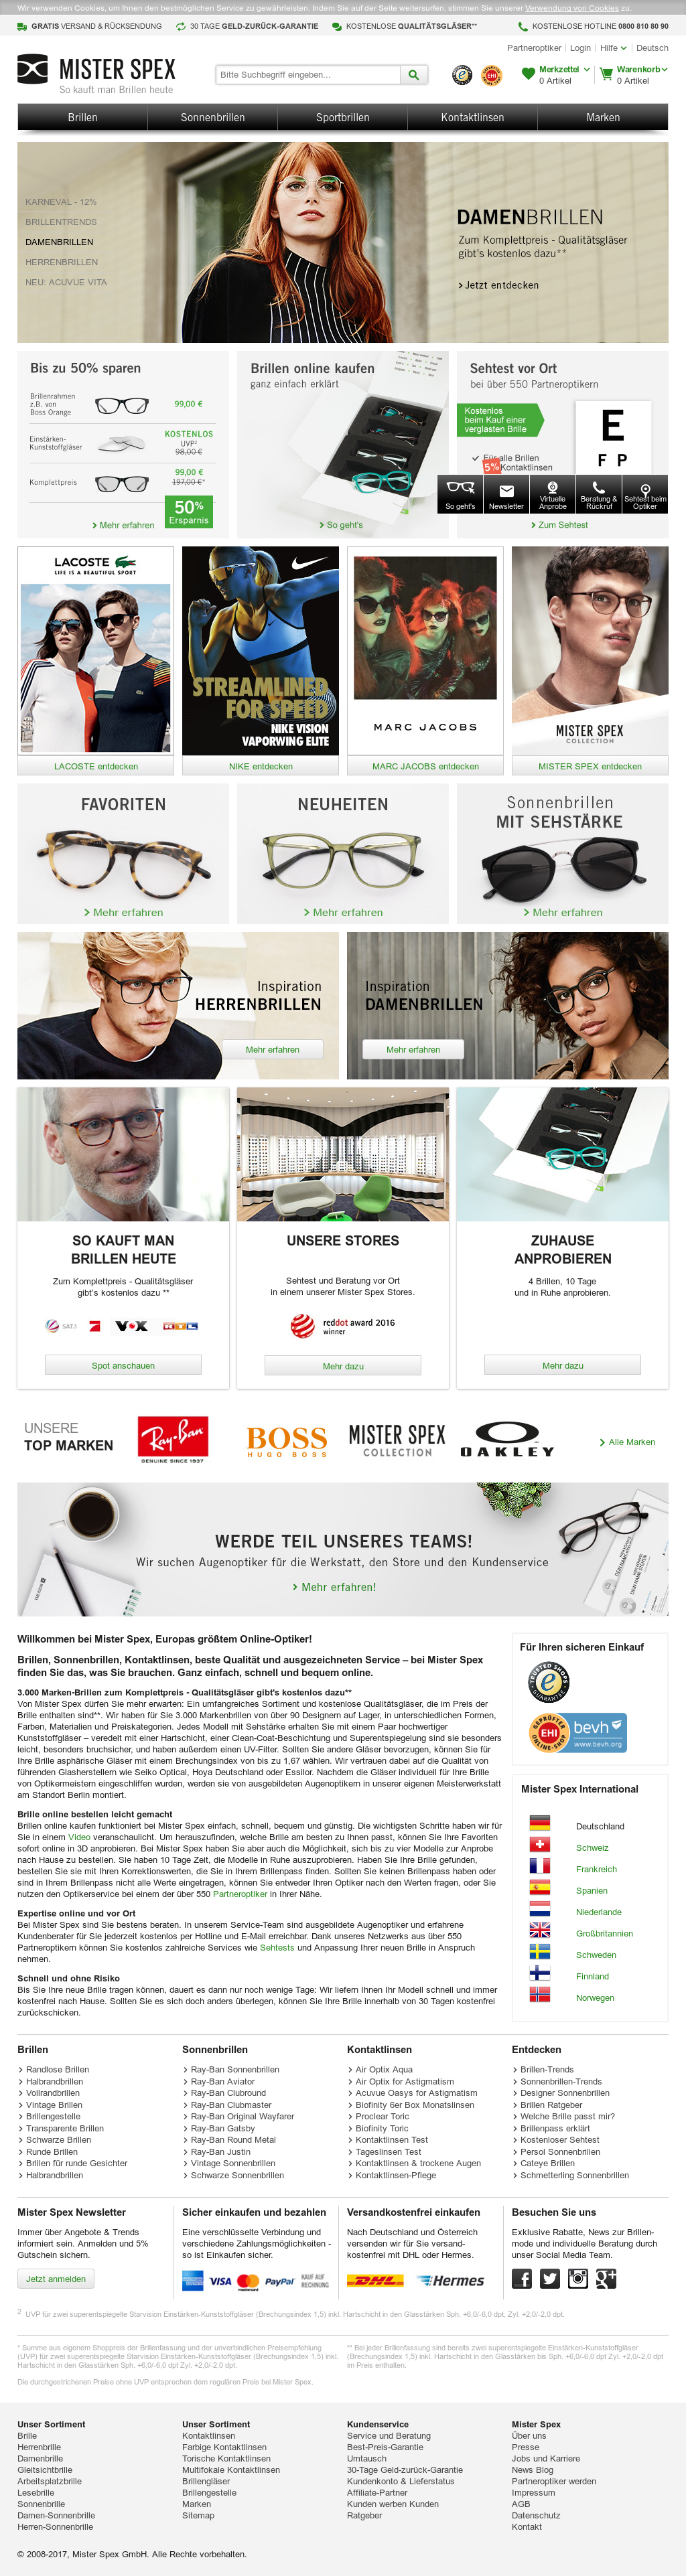 Mister Spex Competitors, Revenue and Employees - Owler Company Profile